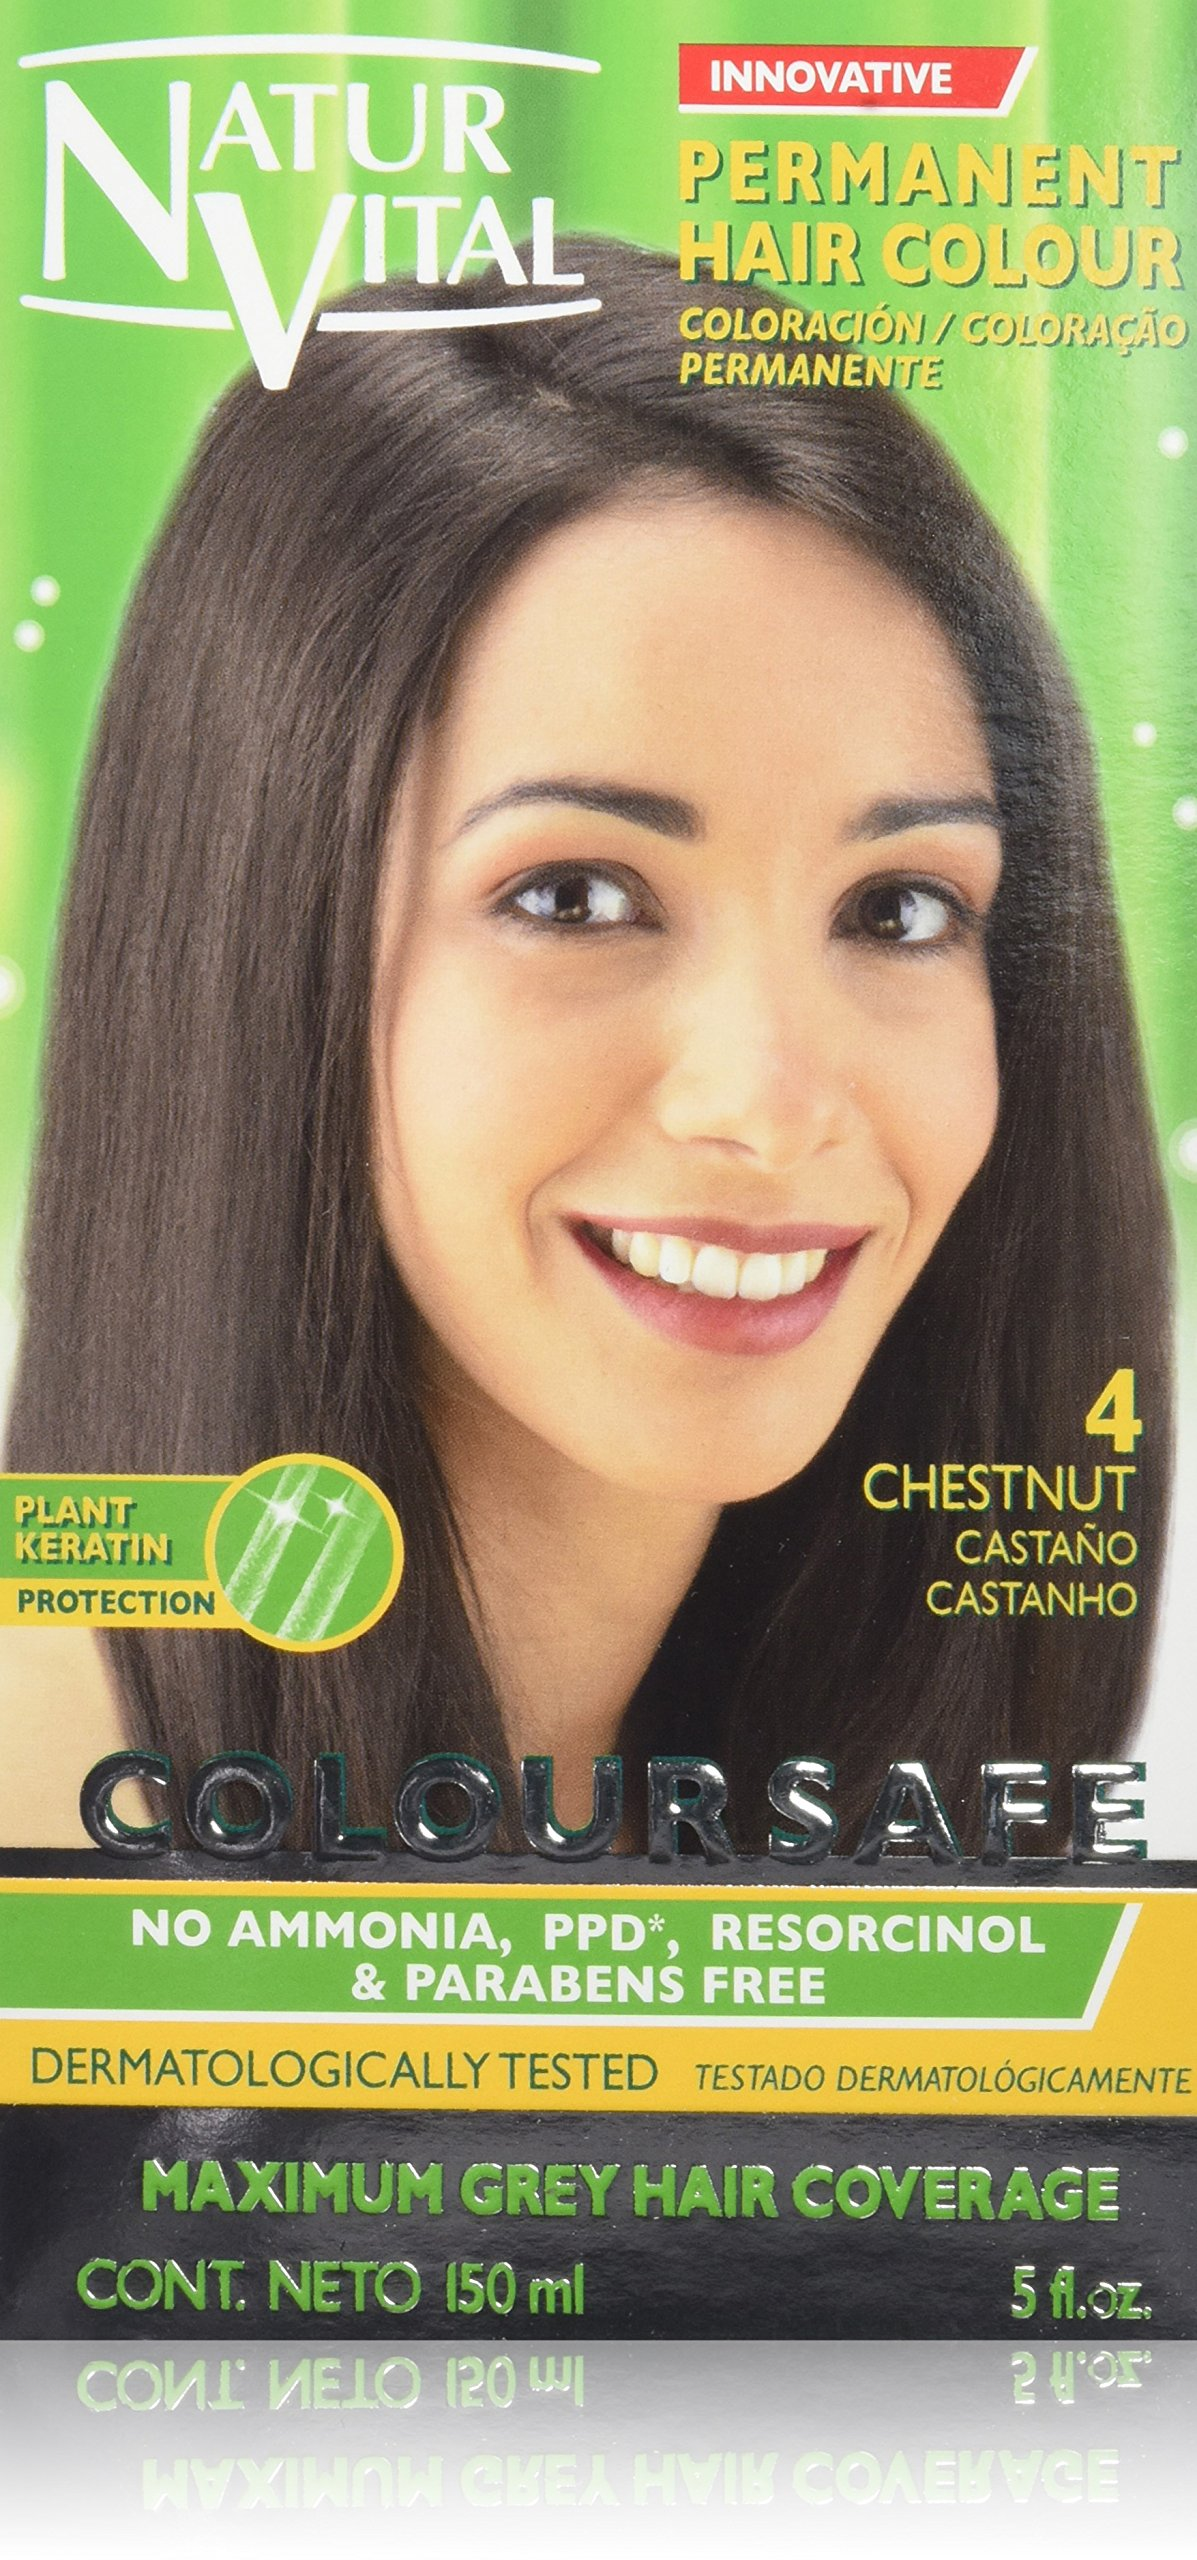 Permanent Hair Dye, Permanent Hair Color . Coloursafe, No Ammonia,Resorcinol,Parabens, or PDD. (~4 Chestnut Hair)